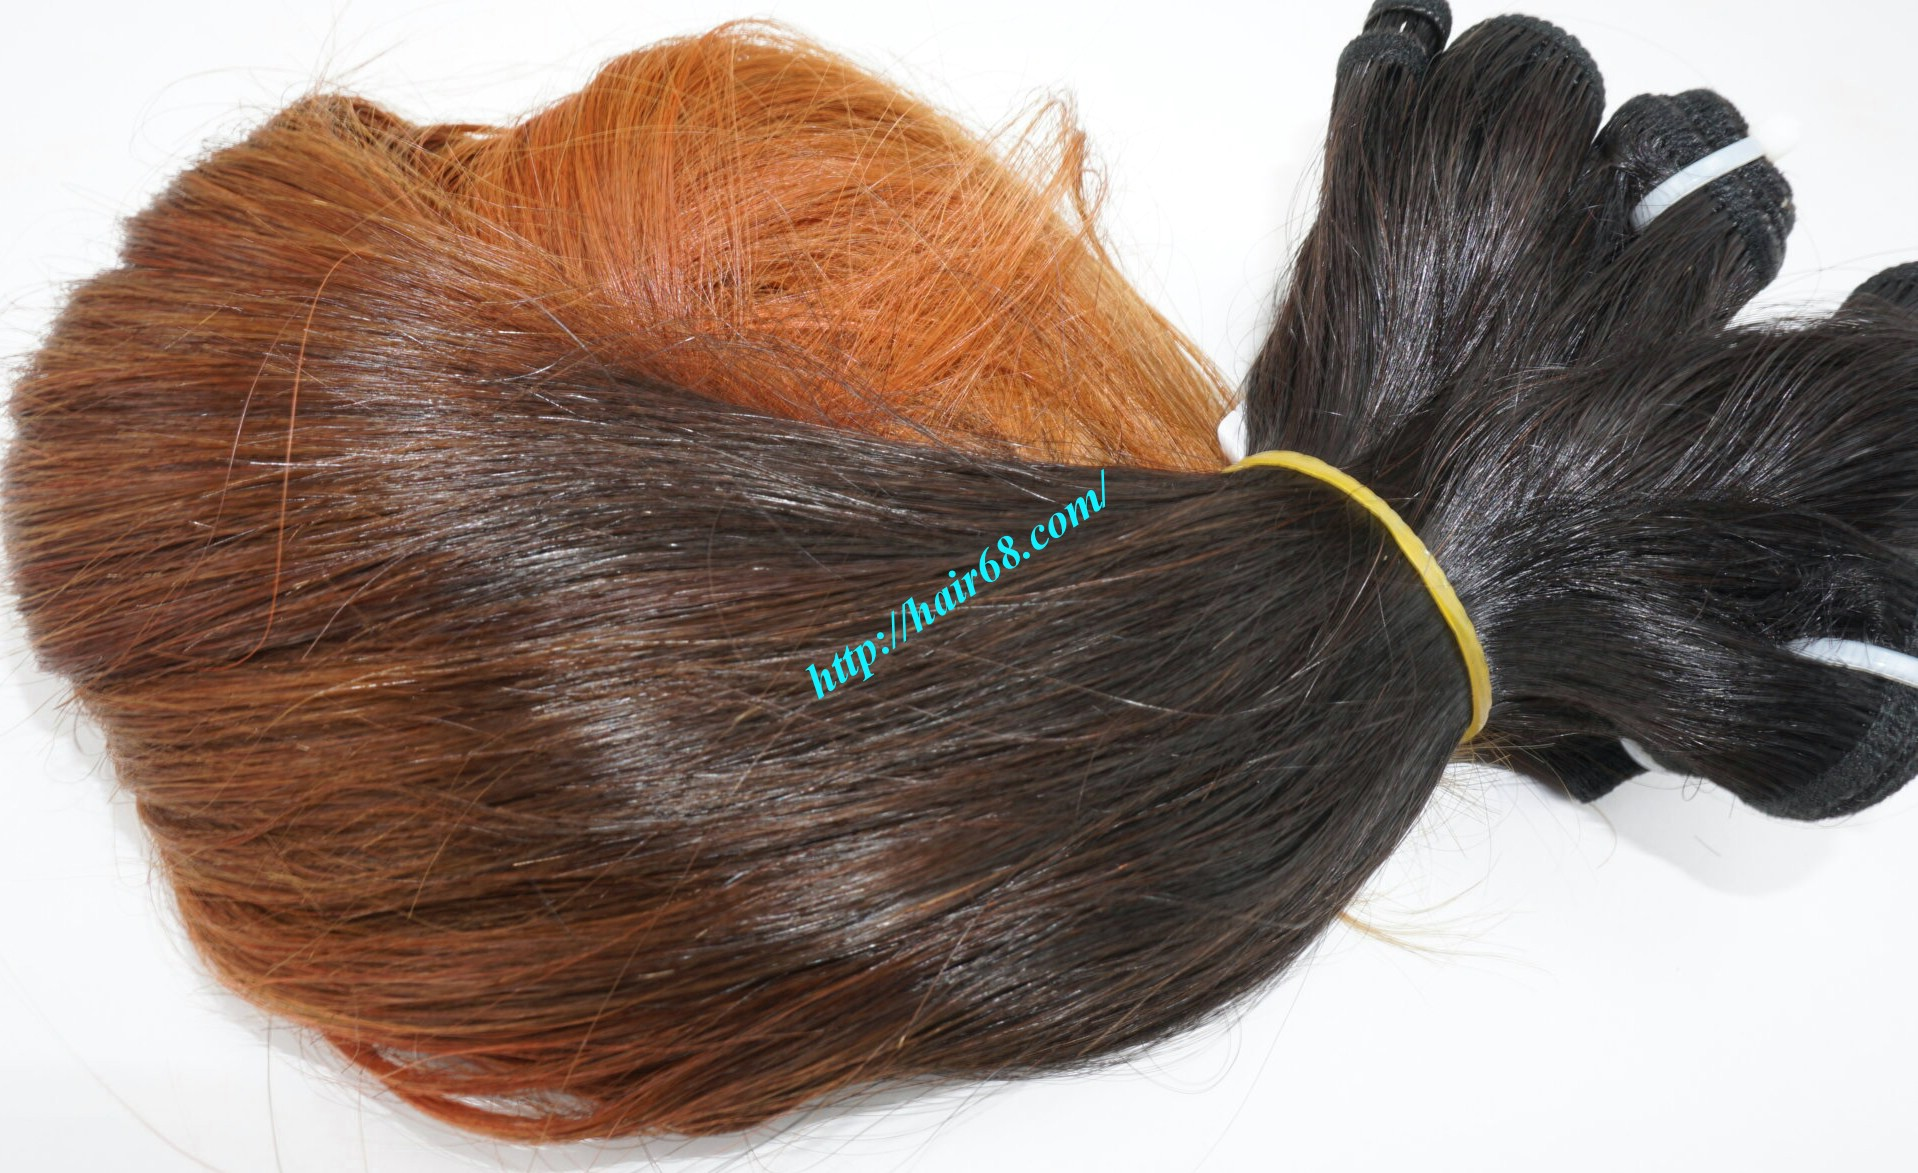 10 inch hair extensions ombre weave vietnam hair 7